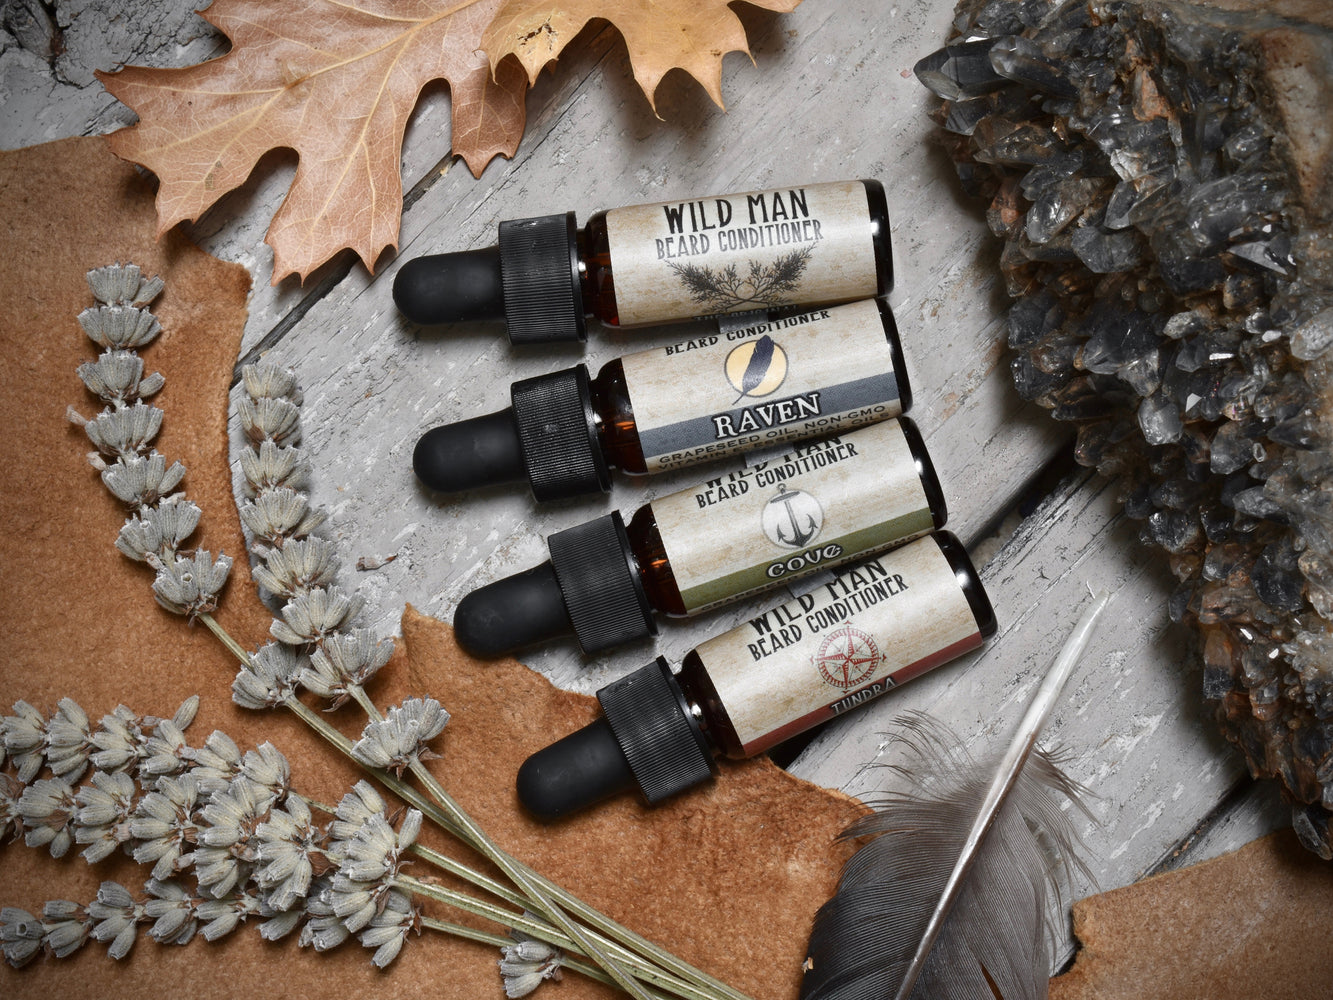 Wild Man Beard Oil Conditioner - Trial Size Sampler Pack